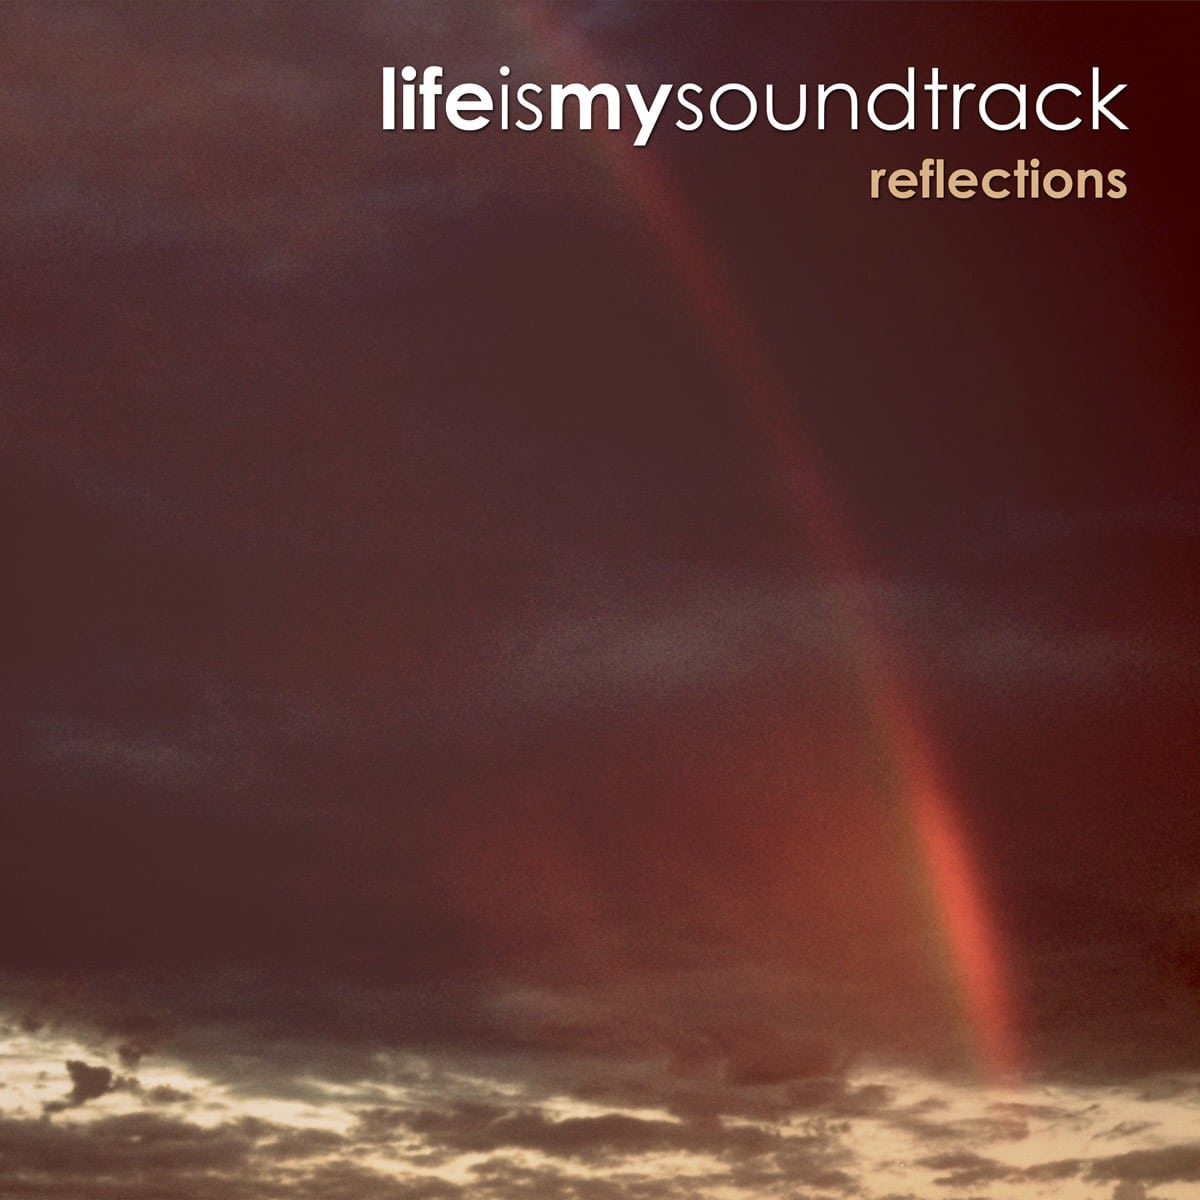 The album Reflections by Life Is My Soundtrack - Electric pianos combined with light electronic and organic elements